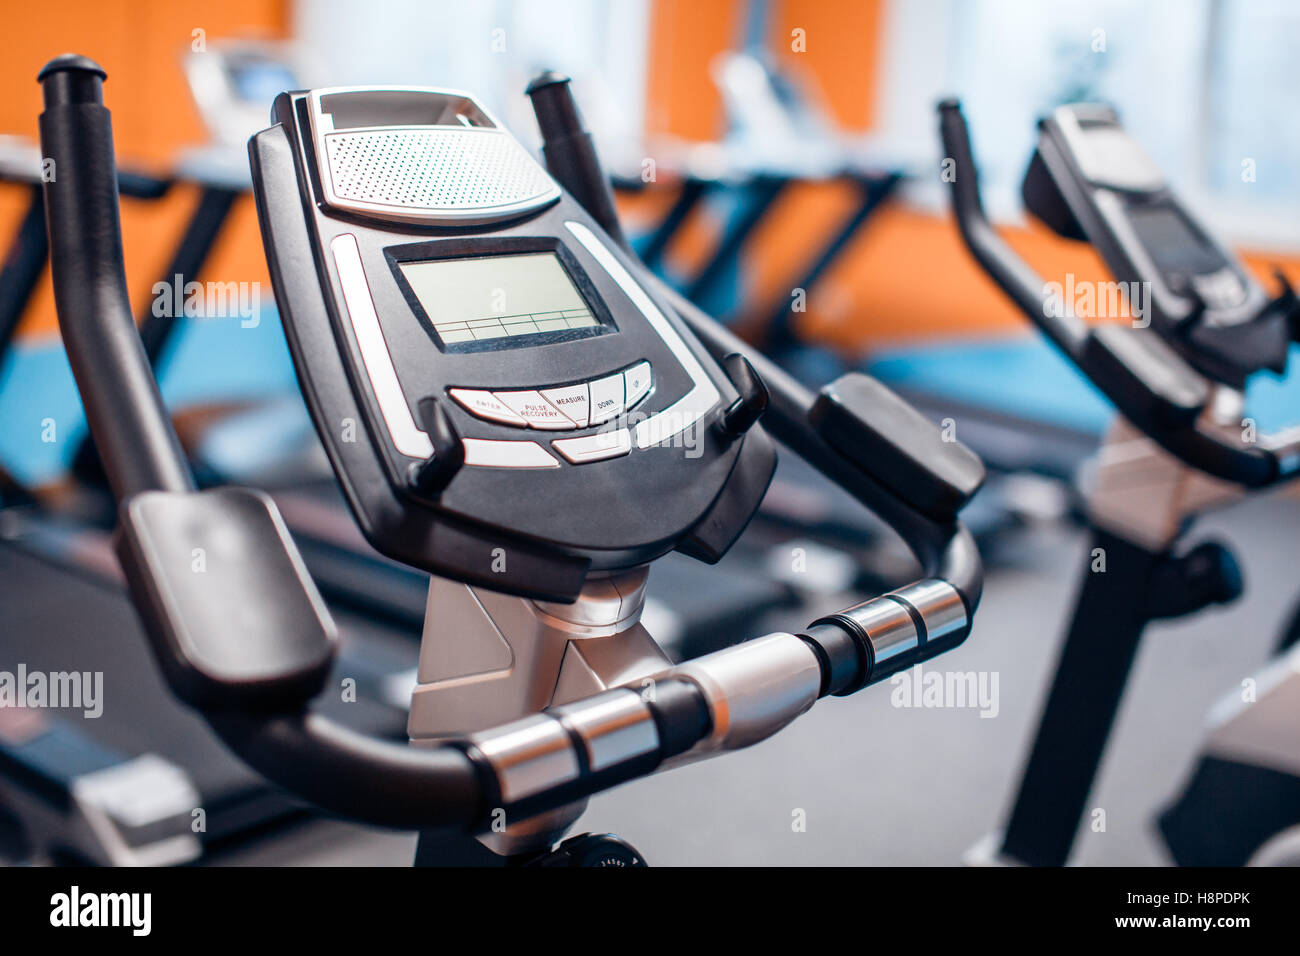 Aerobics spinning exercise bikes gym room with many in a row Stock Foto